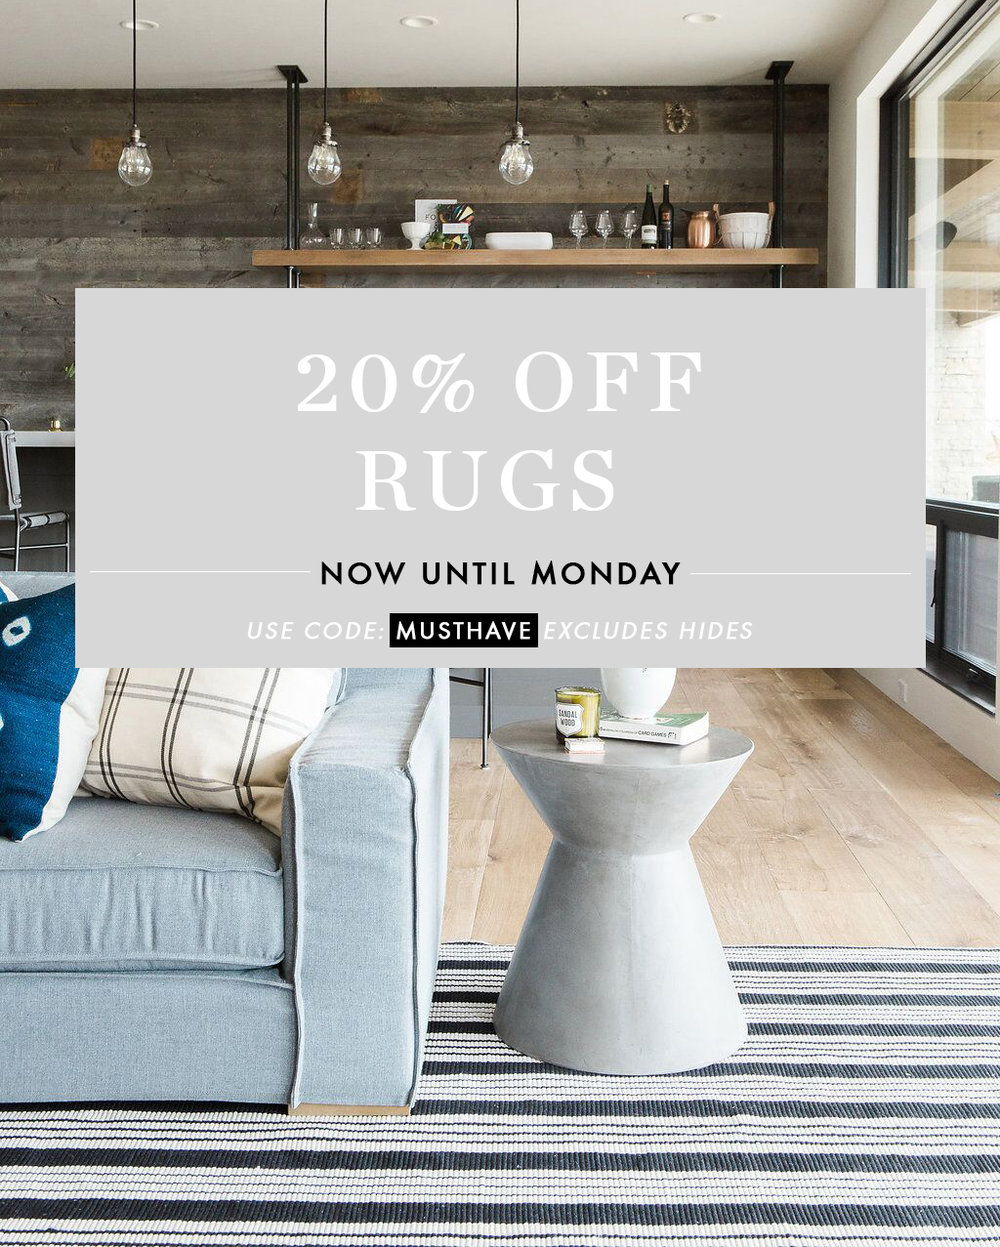 This Weekend Only: 20% Off Rugs at McGee & Co.